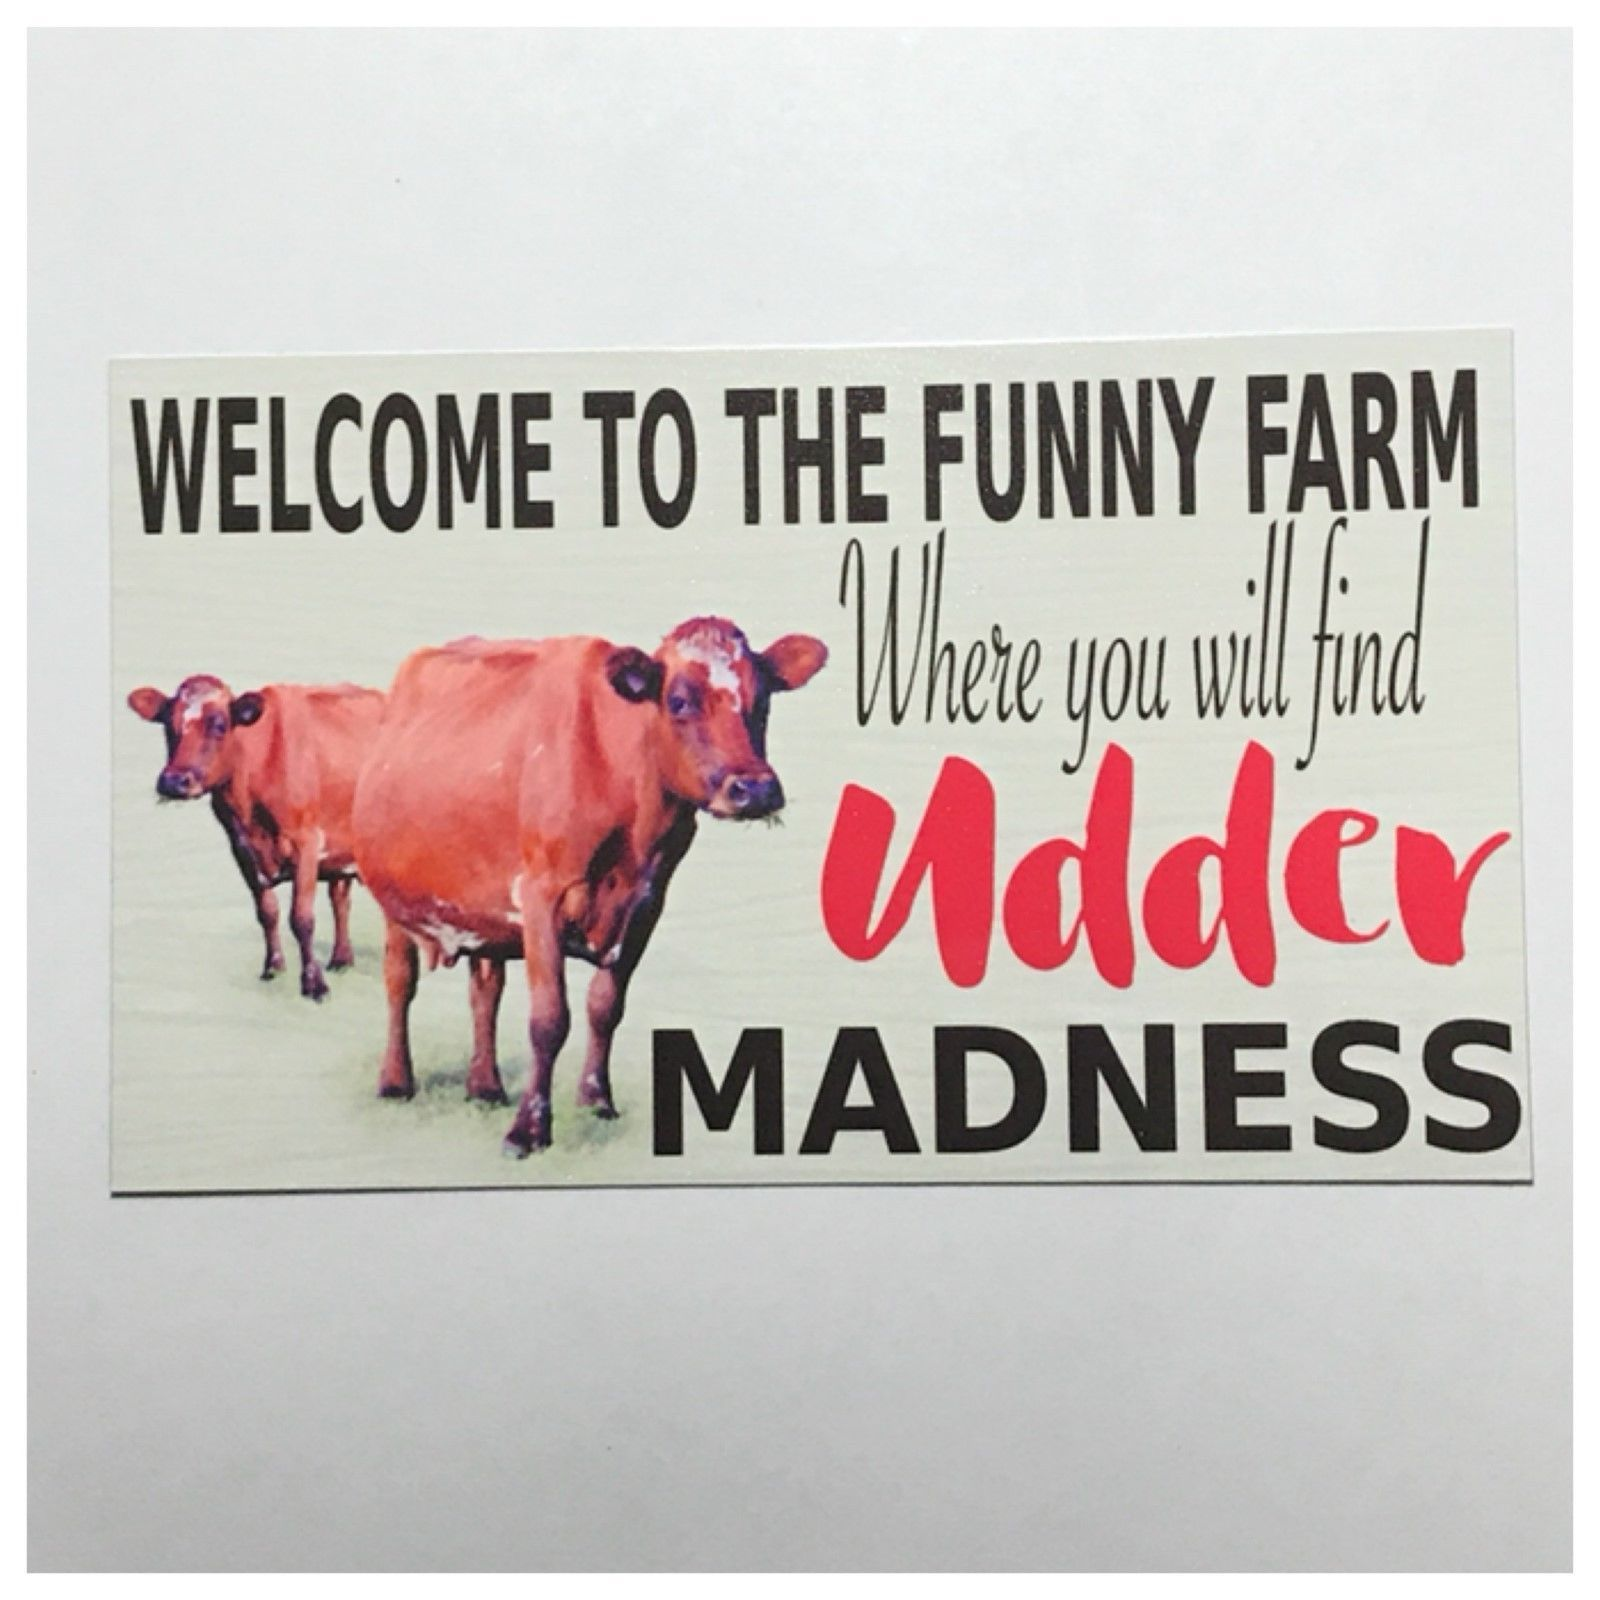 Welcome To The Funny Farm Udder Madness Cow Sign - The Renmy Store